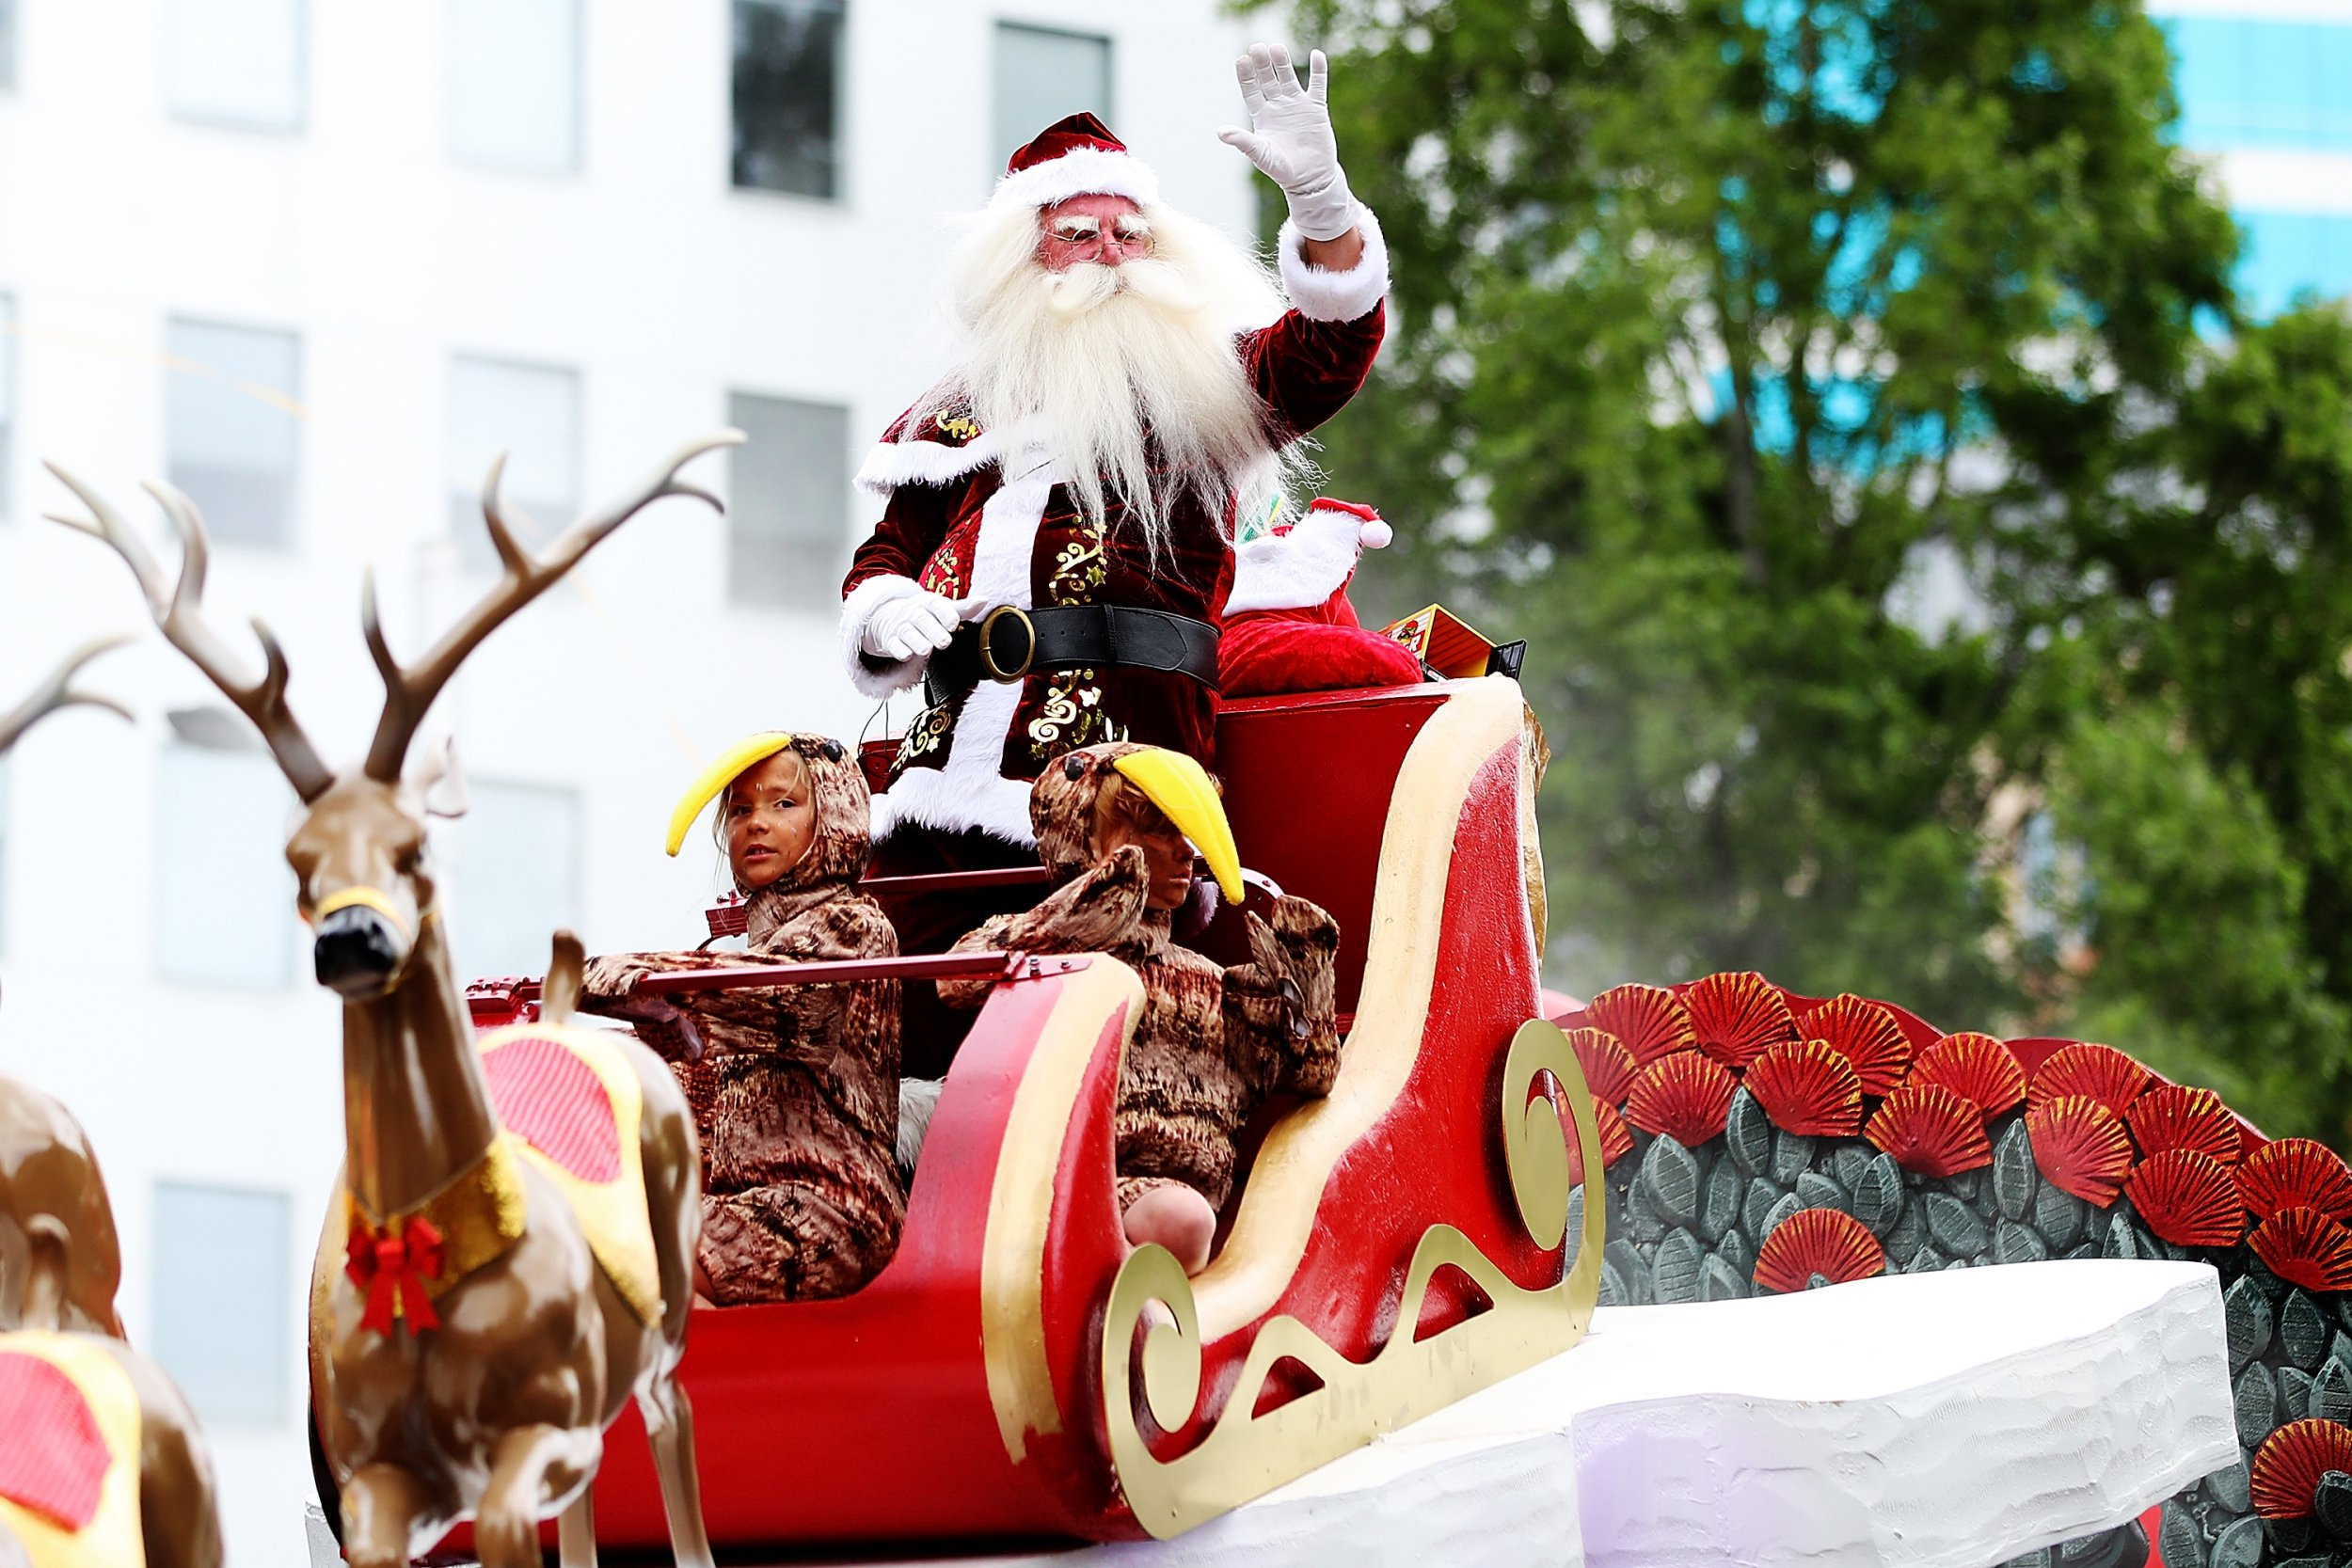 AUCKLAND, NEW ZEALAND - NOVEMBER 26: Santa waves to the crowds during the annual Farmers Santa Parade on November 26, 2017 in Auckland, New Zealand. The Farmers Santa Parade has brought joy to the children of Auckland marking the start of the Christmas season for 84 years. (Photo by Hannah Peters/Getty Images)